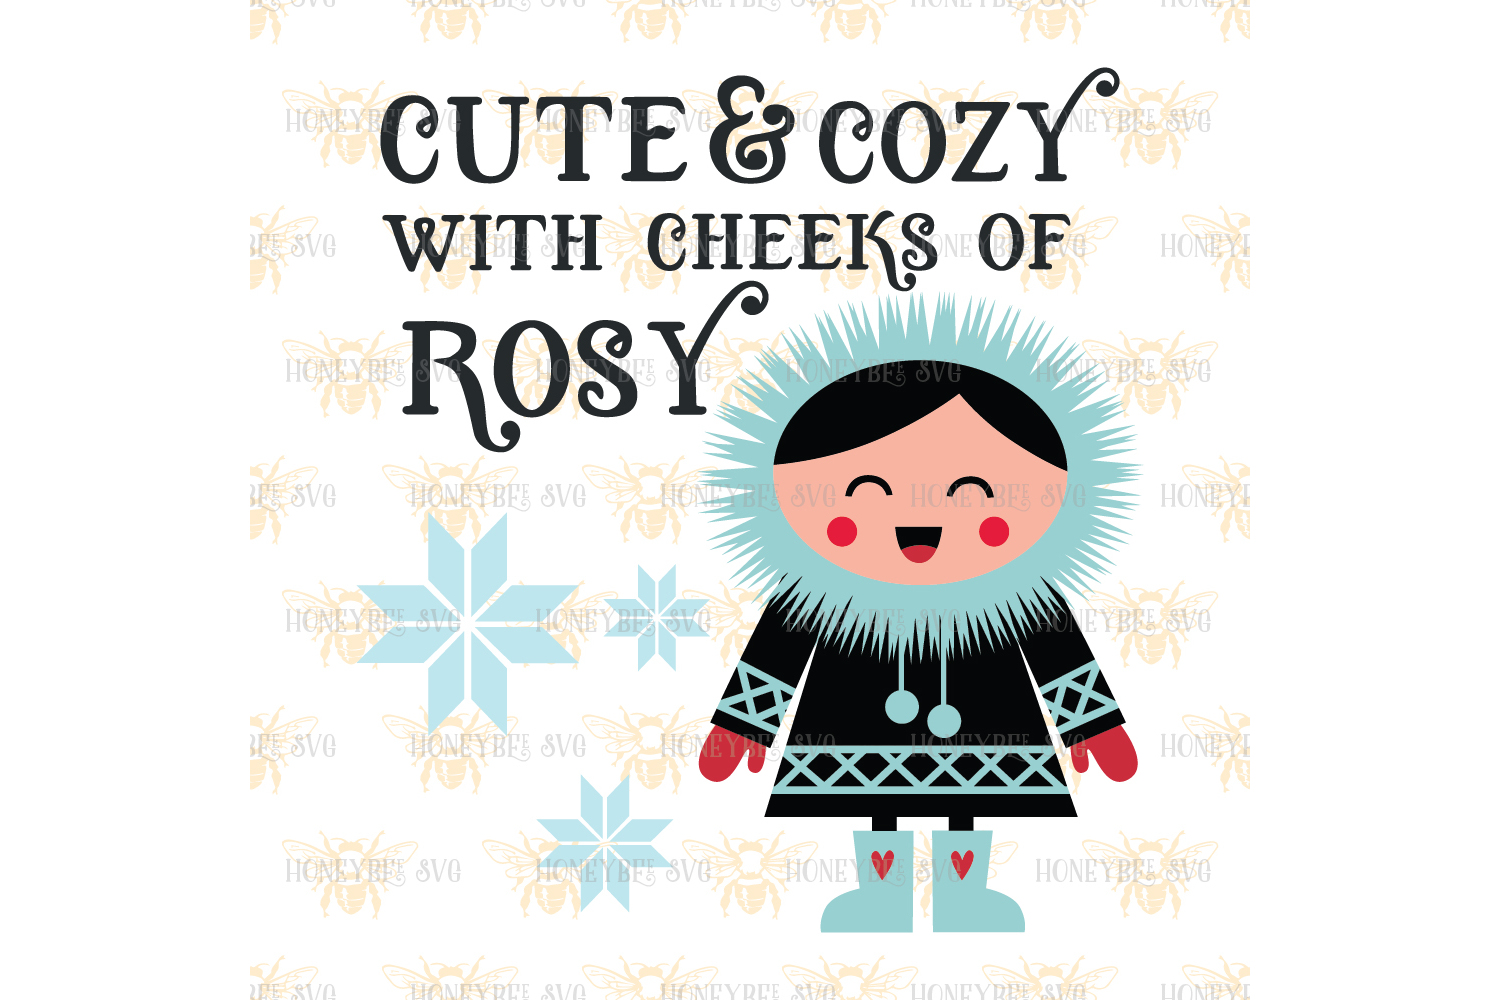 Cute and Cozy Cheeks of Rosy svg  example image 2